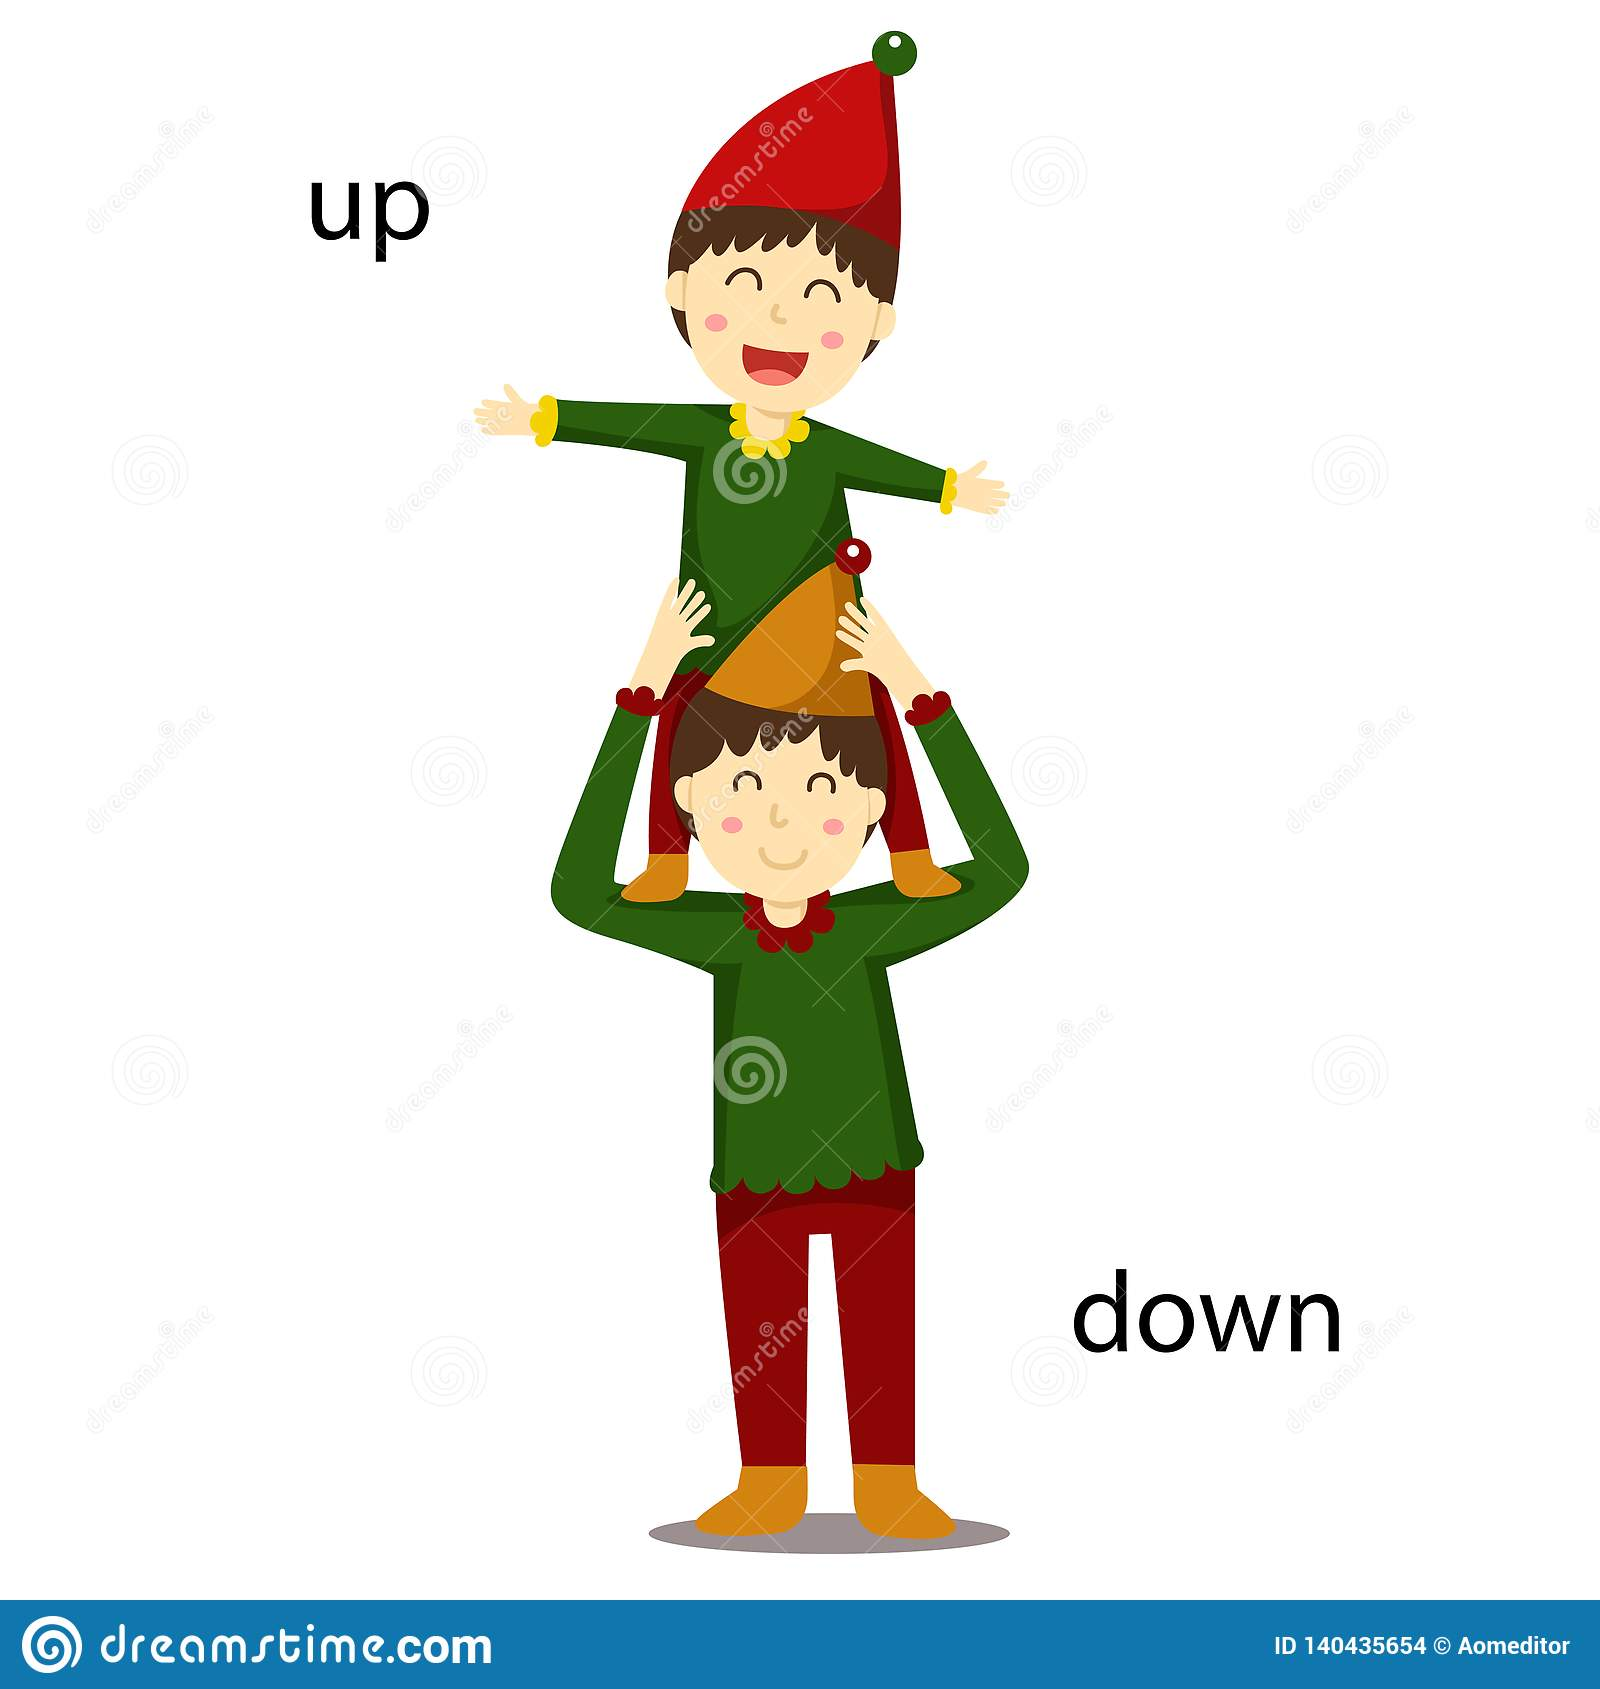 Illustrator Of Opposite Up And Down Stock Vector